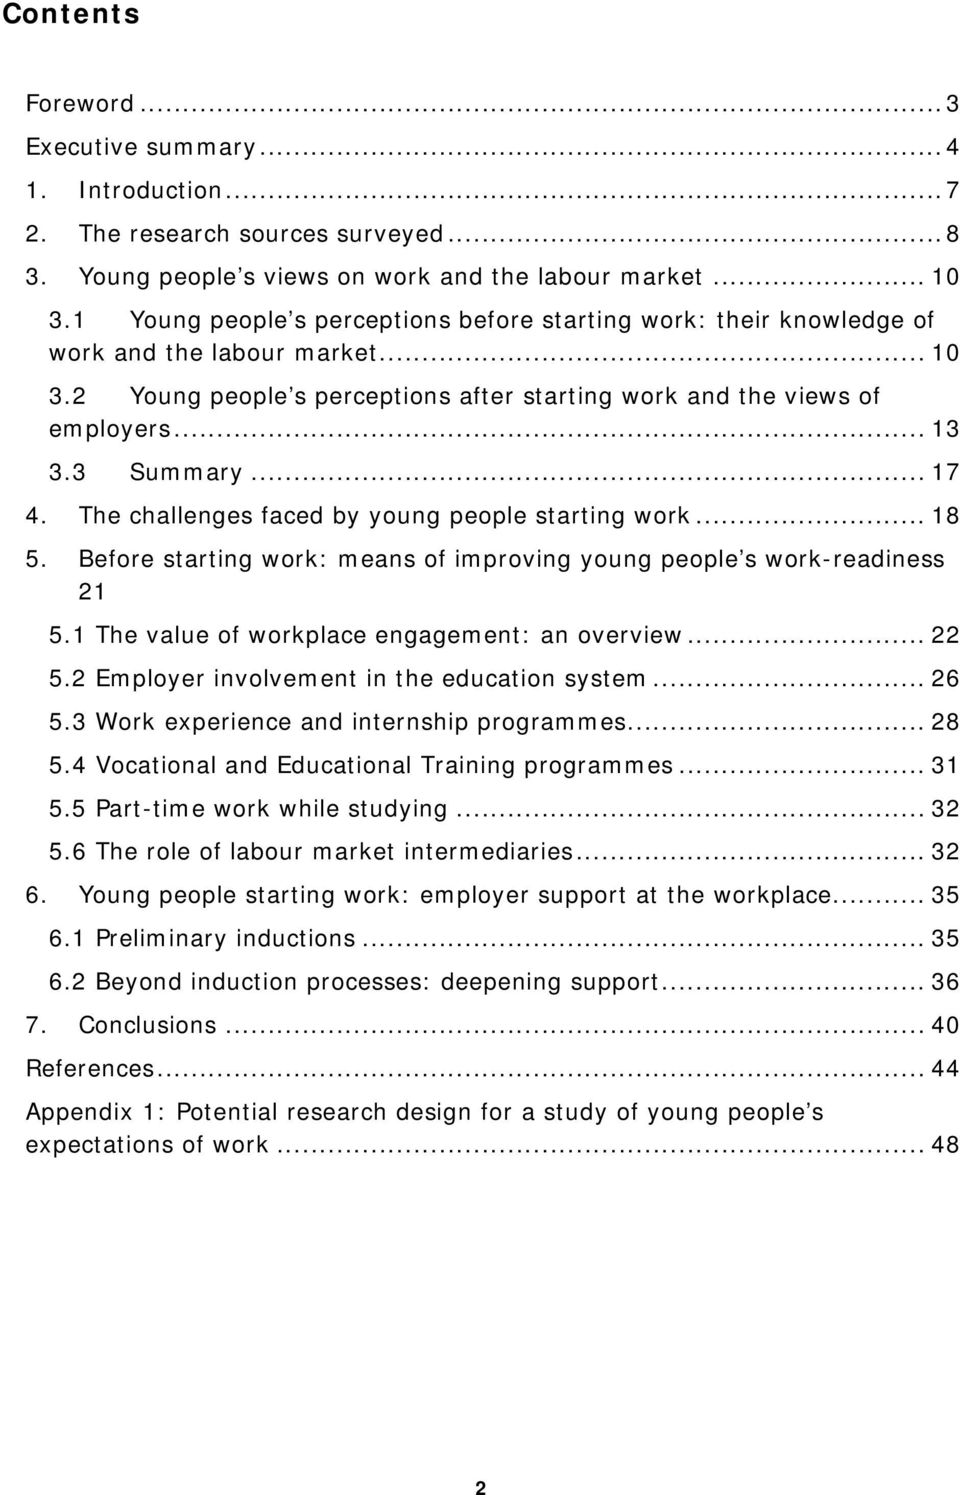 .. 17 4. The challenges faced by young people starting work... 18 5. Before starting work: means of improving young people s work-readiness 21 5.1 The value of workplace engagement: an overview... 22 5.